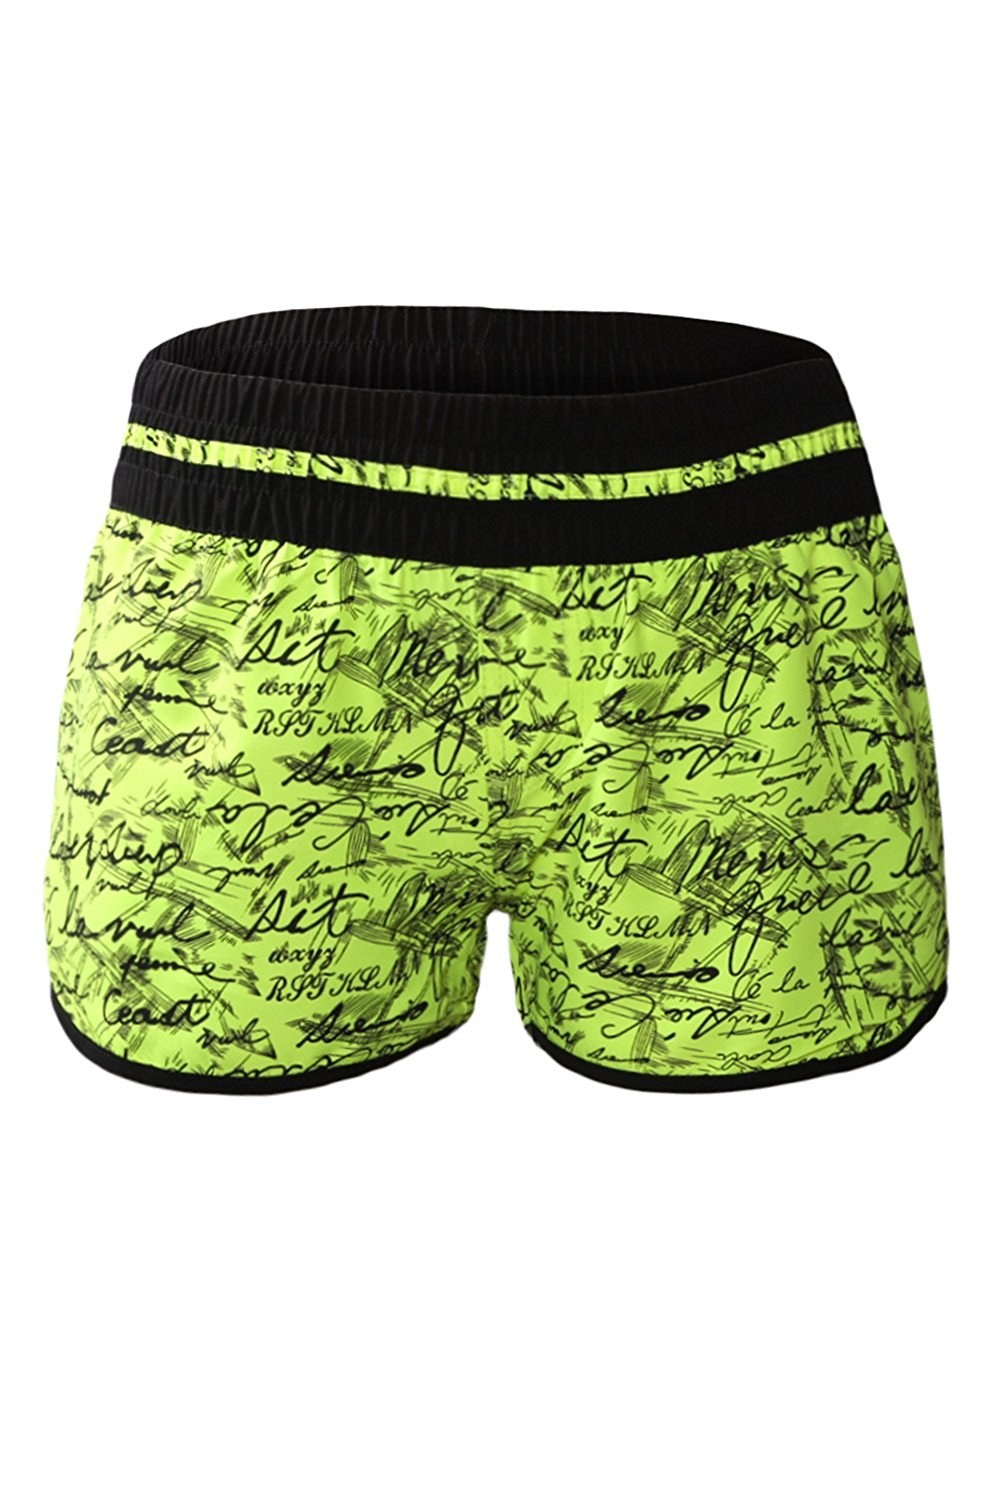 09b309ba91 Get Quotations · Prime Leader Yellow Individual Handwriting Print Swim  Shorts For Women